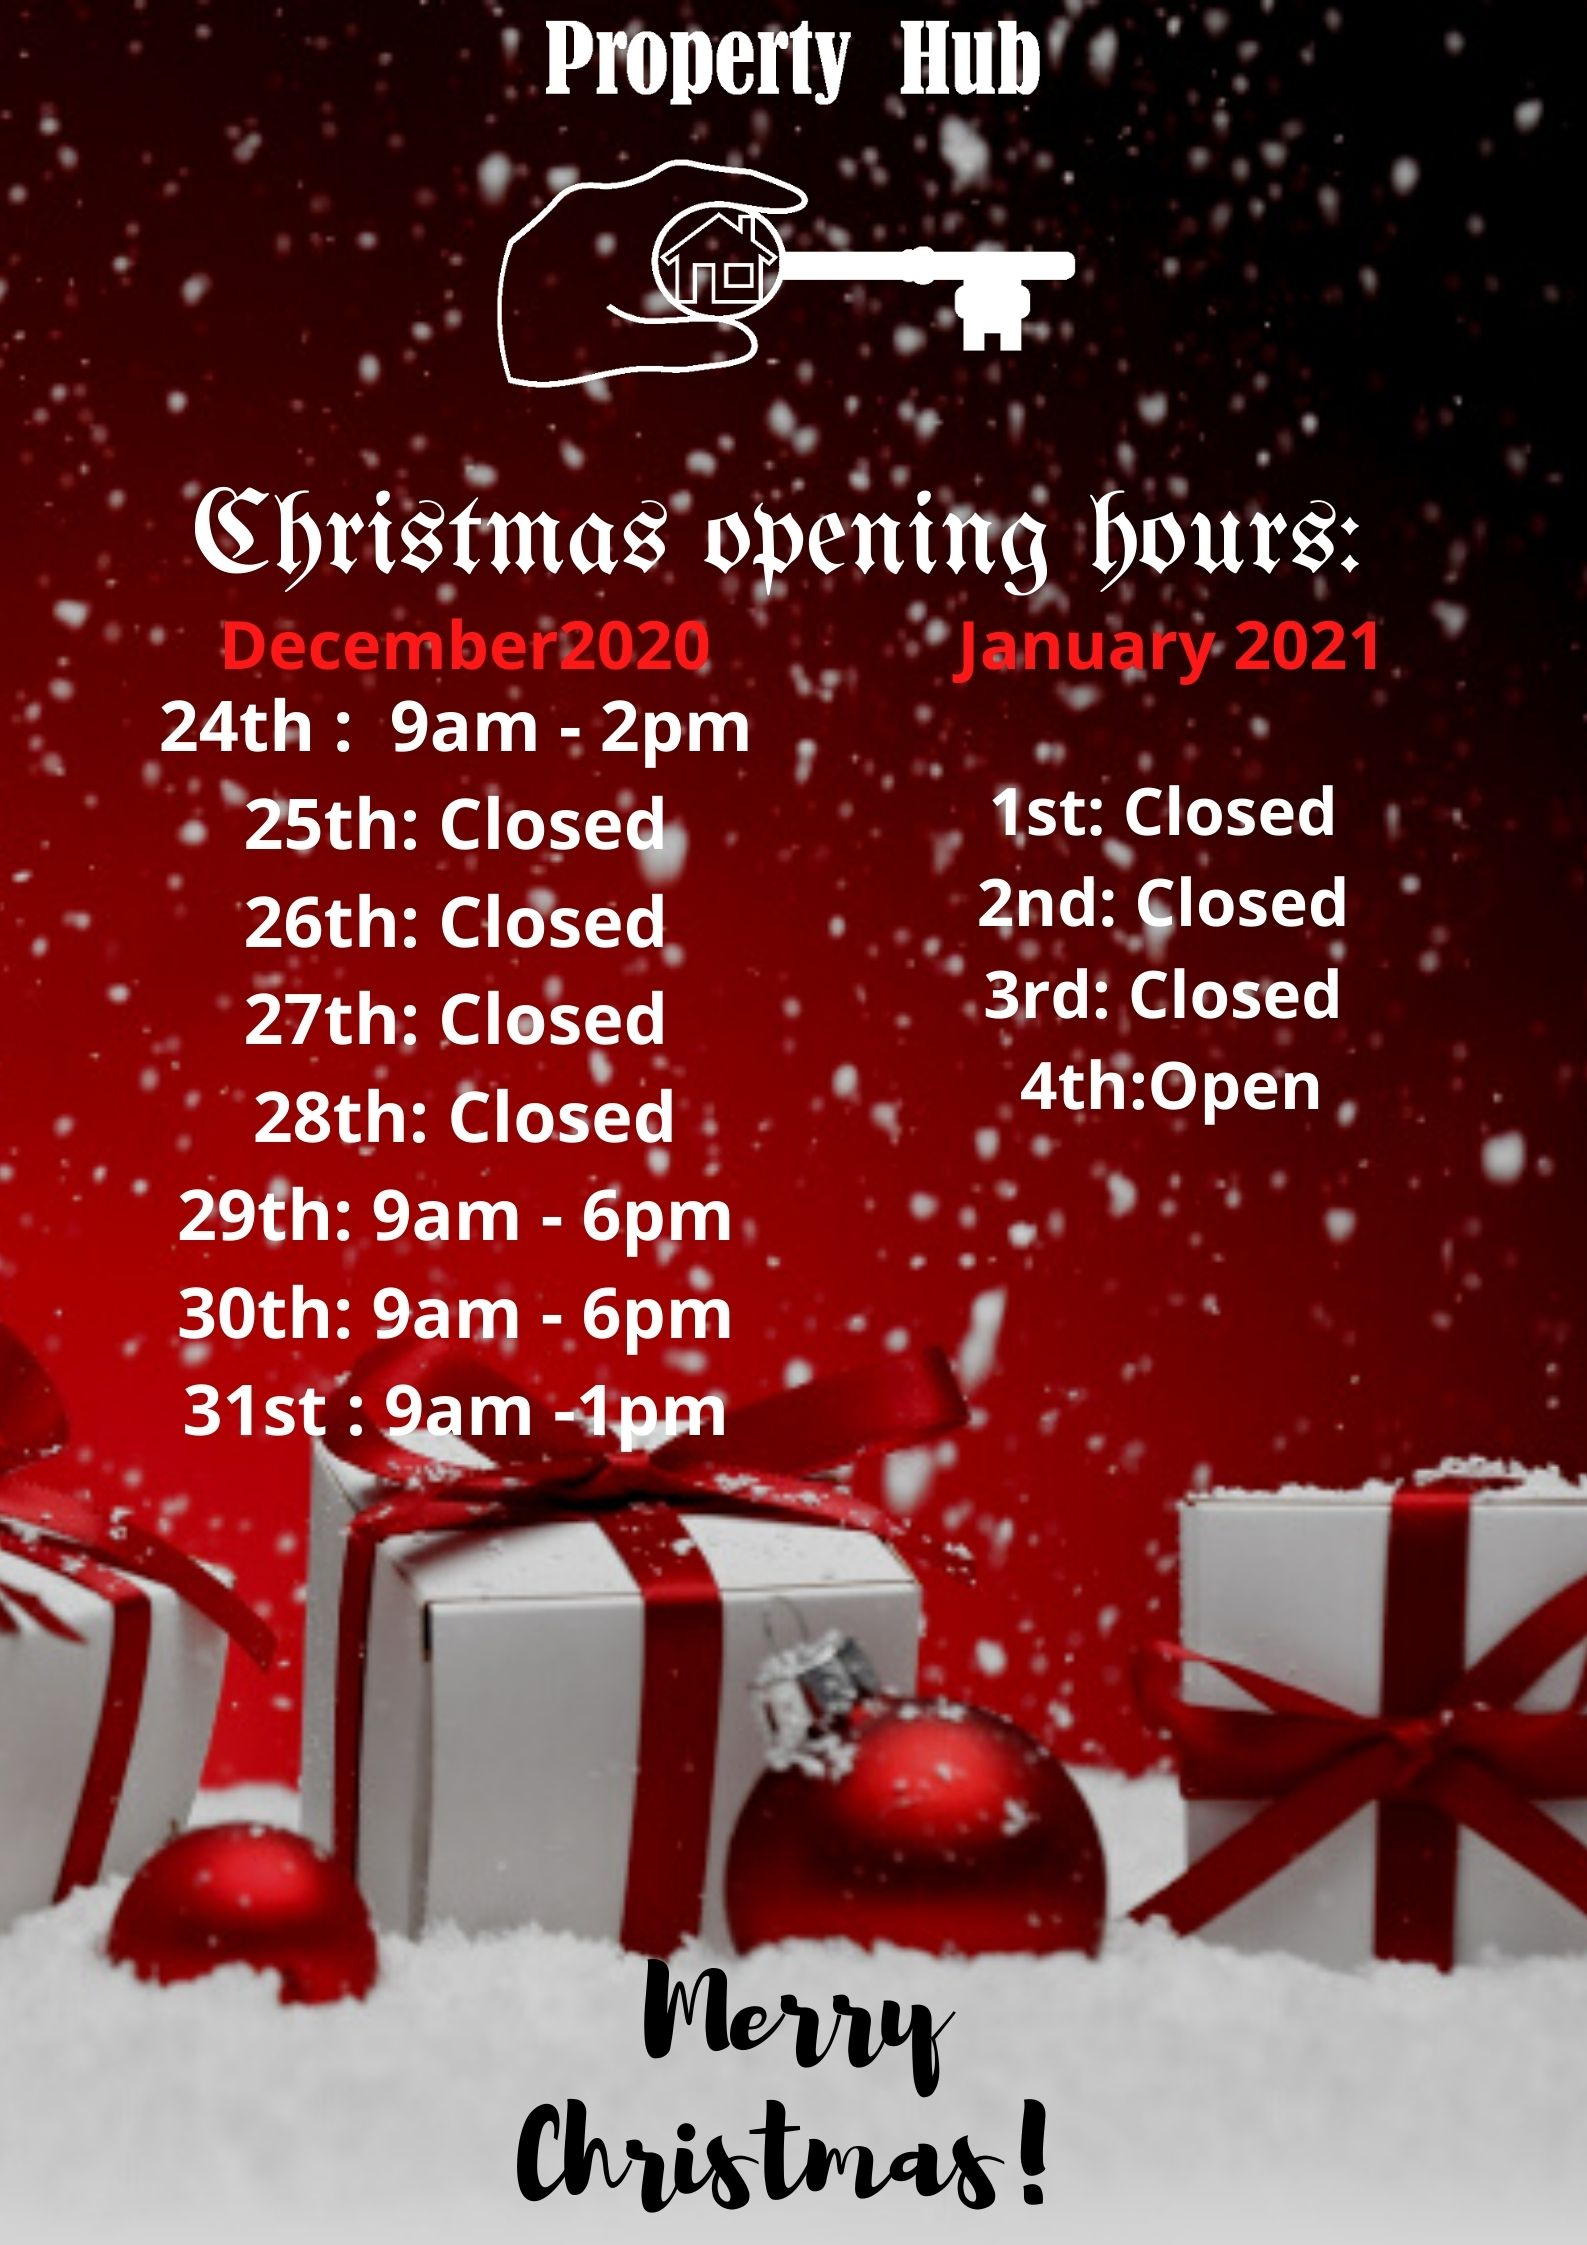 Christmas Opening and Closing Times